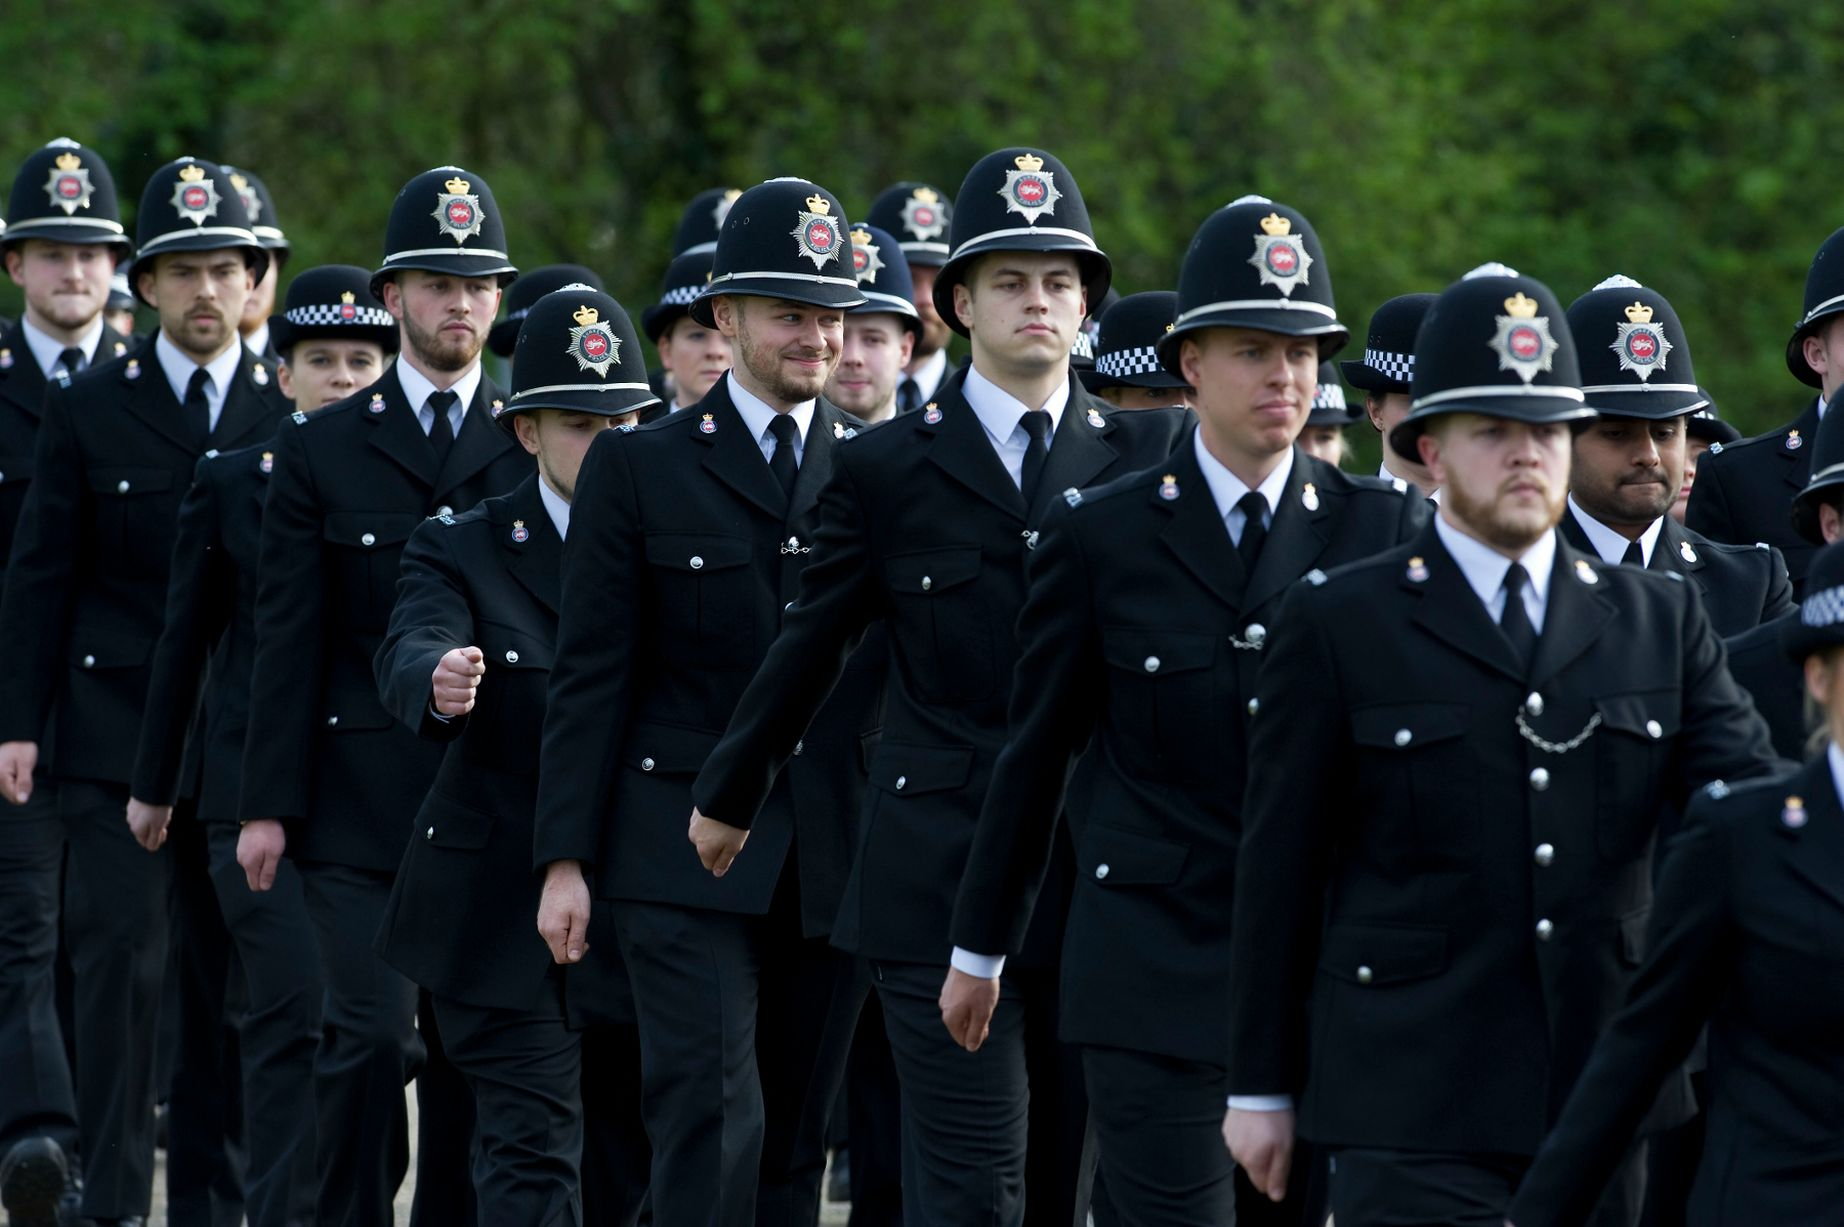 Surrey Police recruits.jpg